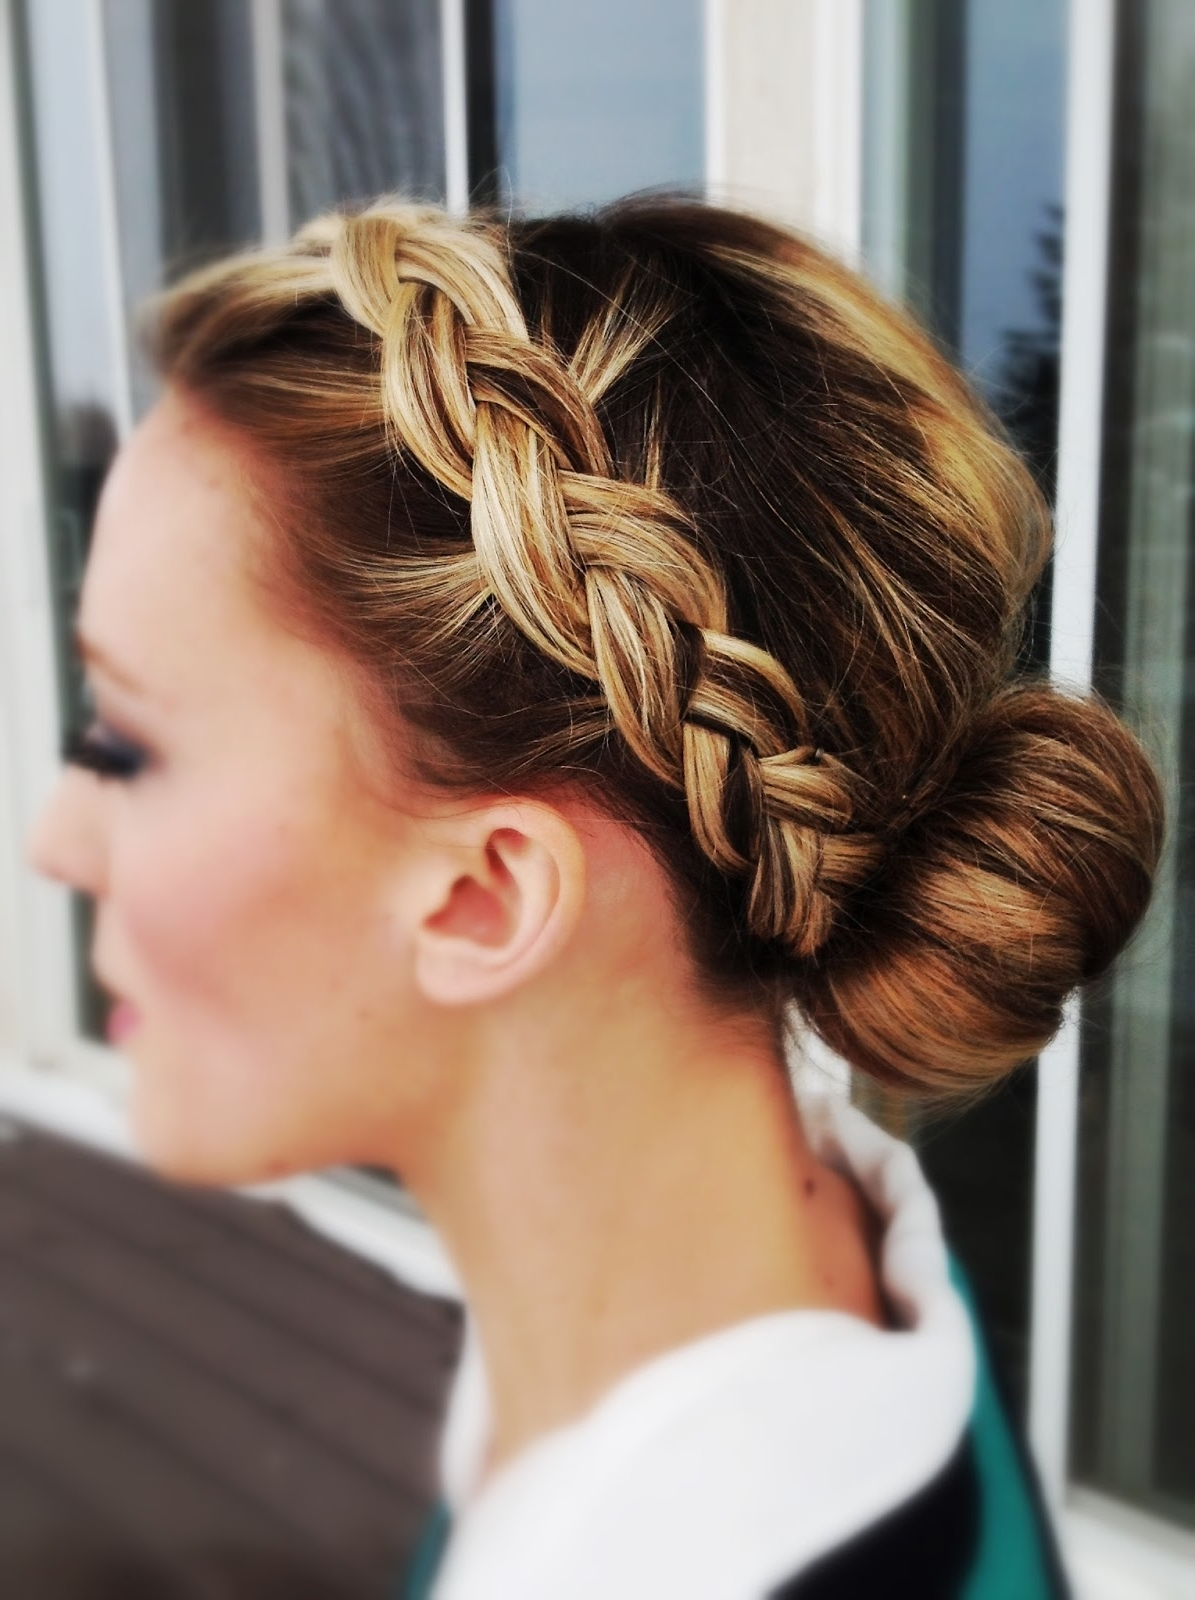 Let's Get Pretty Again: Front Braid To Sock Bun With Trendy Two French Braid Hairstyles With A Sock Bun (View 13 of 15)